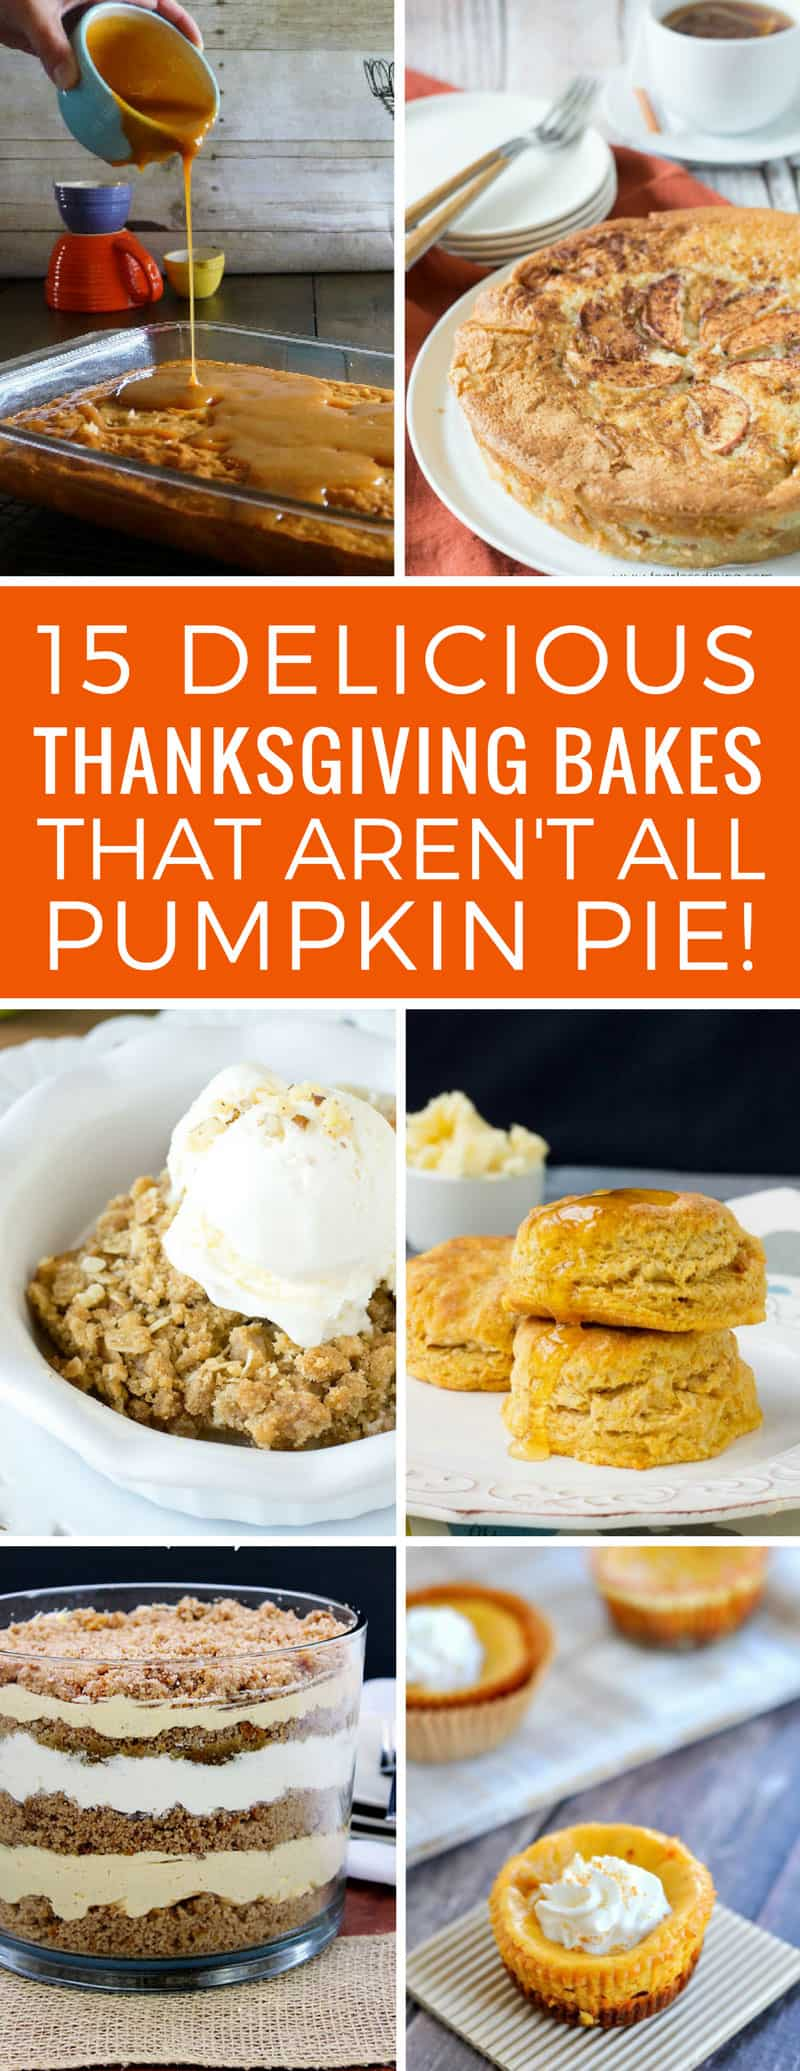 Oh my goodness these Thanksgiving baking ideas are crazy good - especially the one with praline! Thanks for sharing!